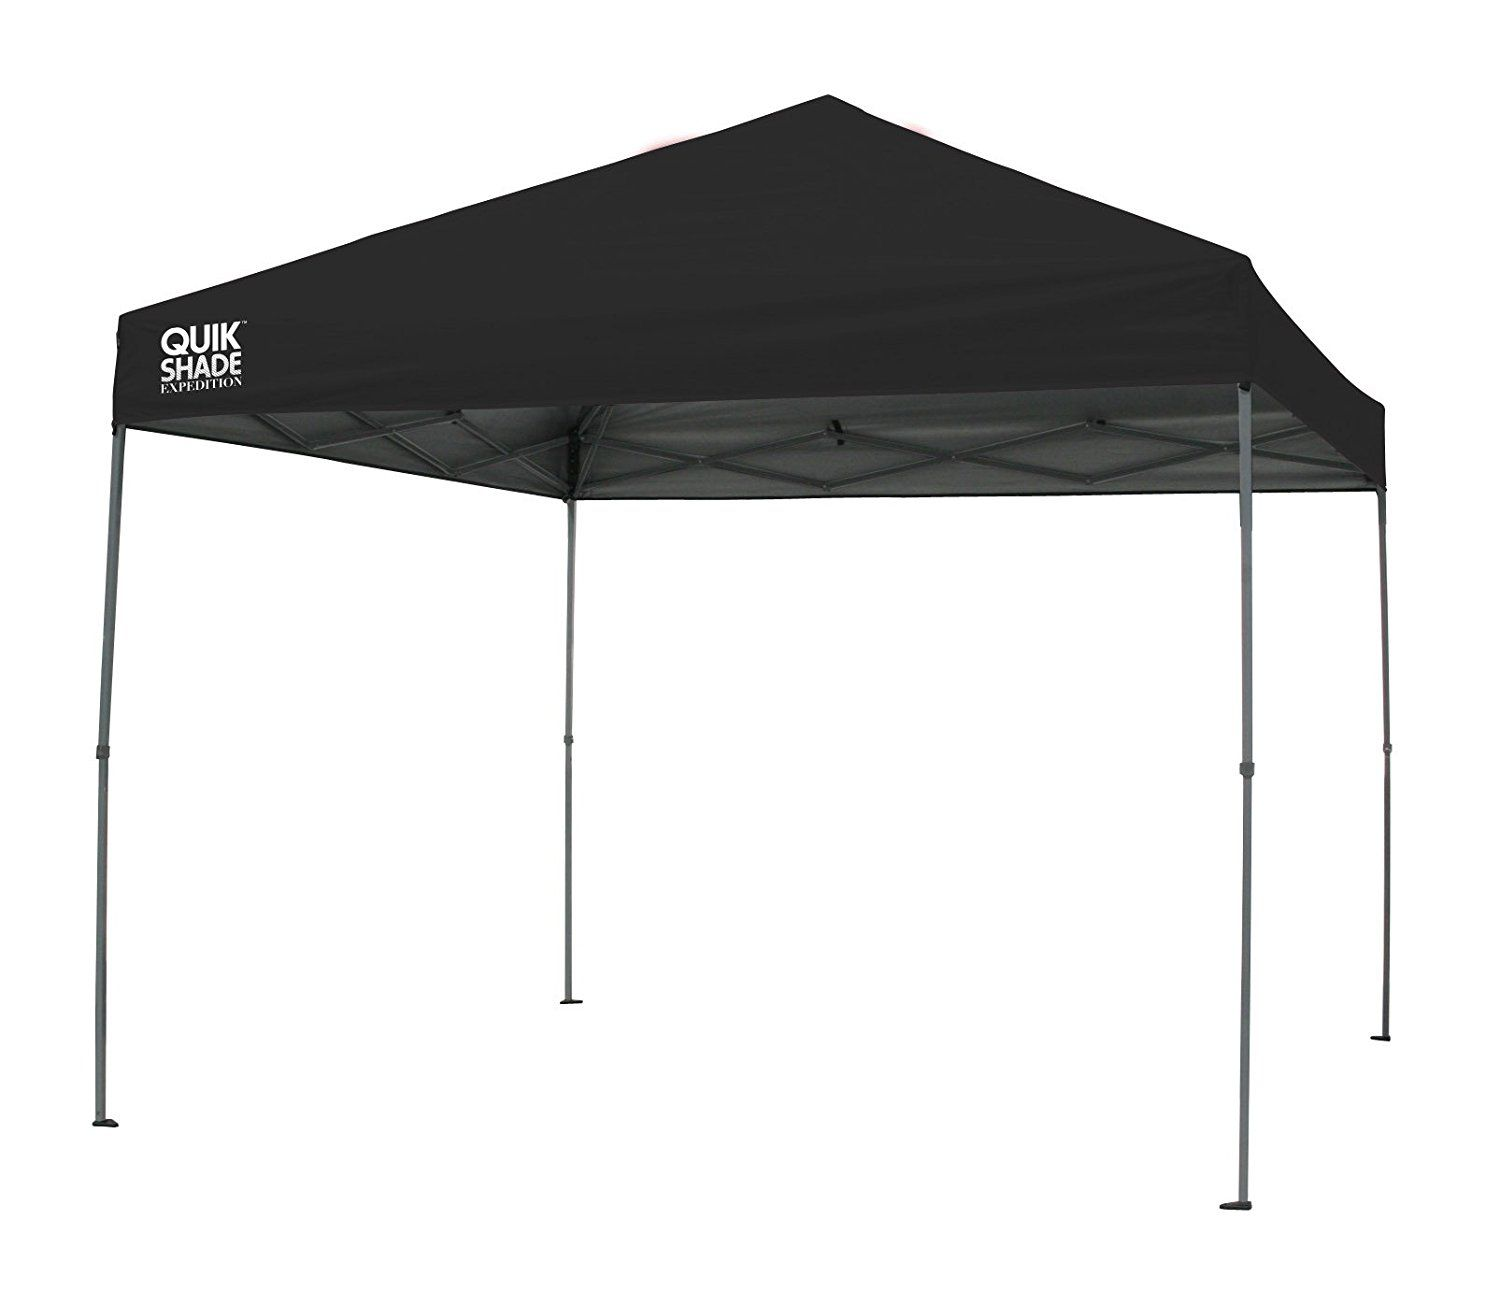 Quik Shade Expedition Ex100 10 X 10 Straight Leg Instant Canopy Be Sure To Check Out This Awesome Product Instant Canopy Canopy Shade Tent